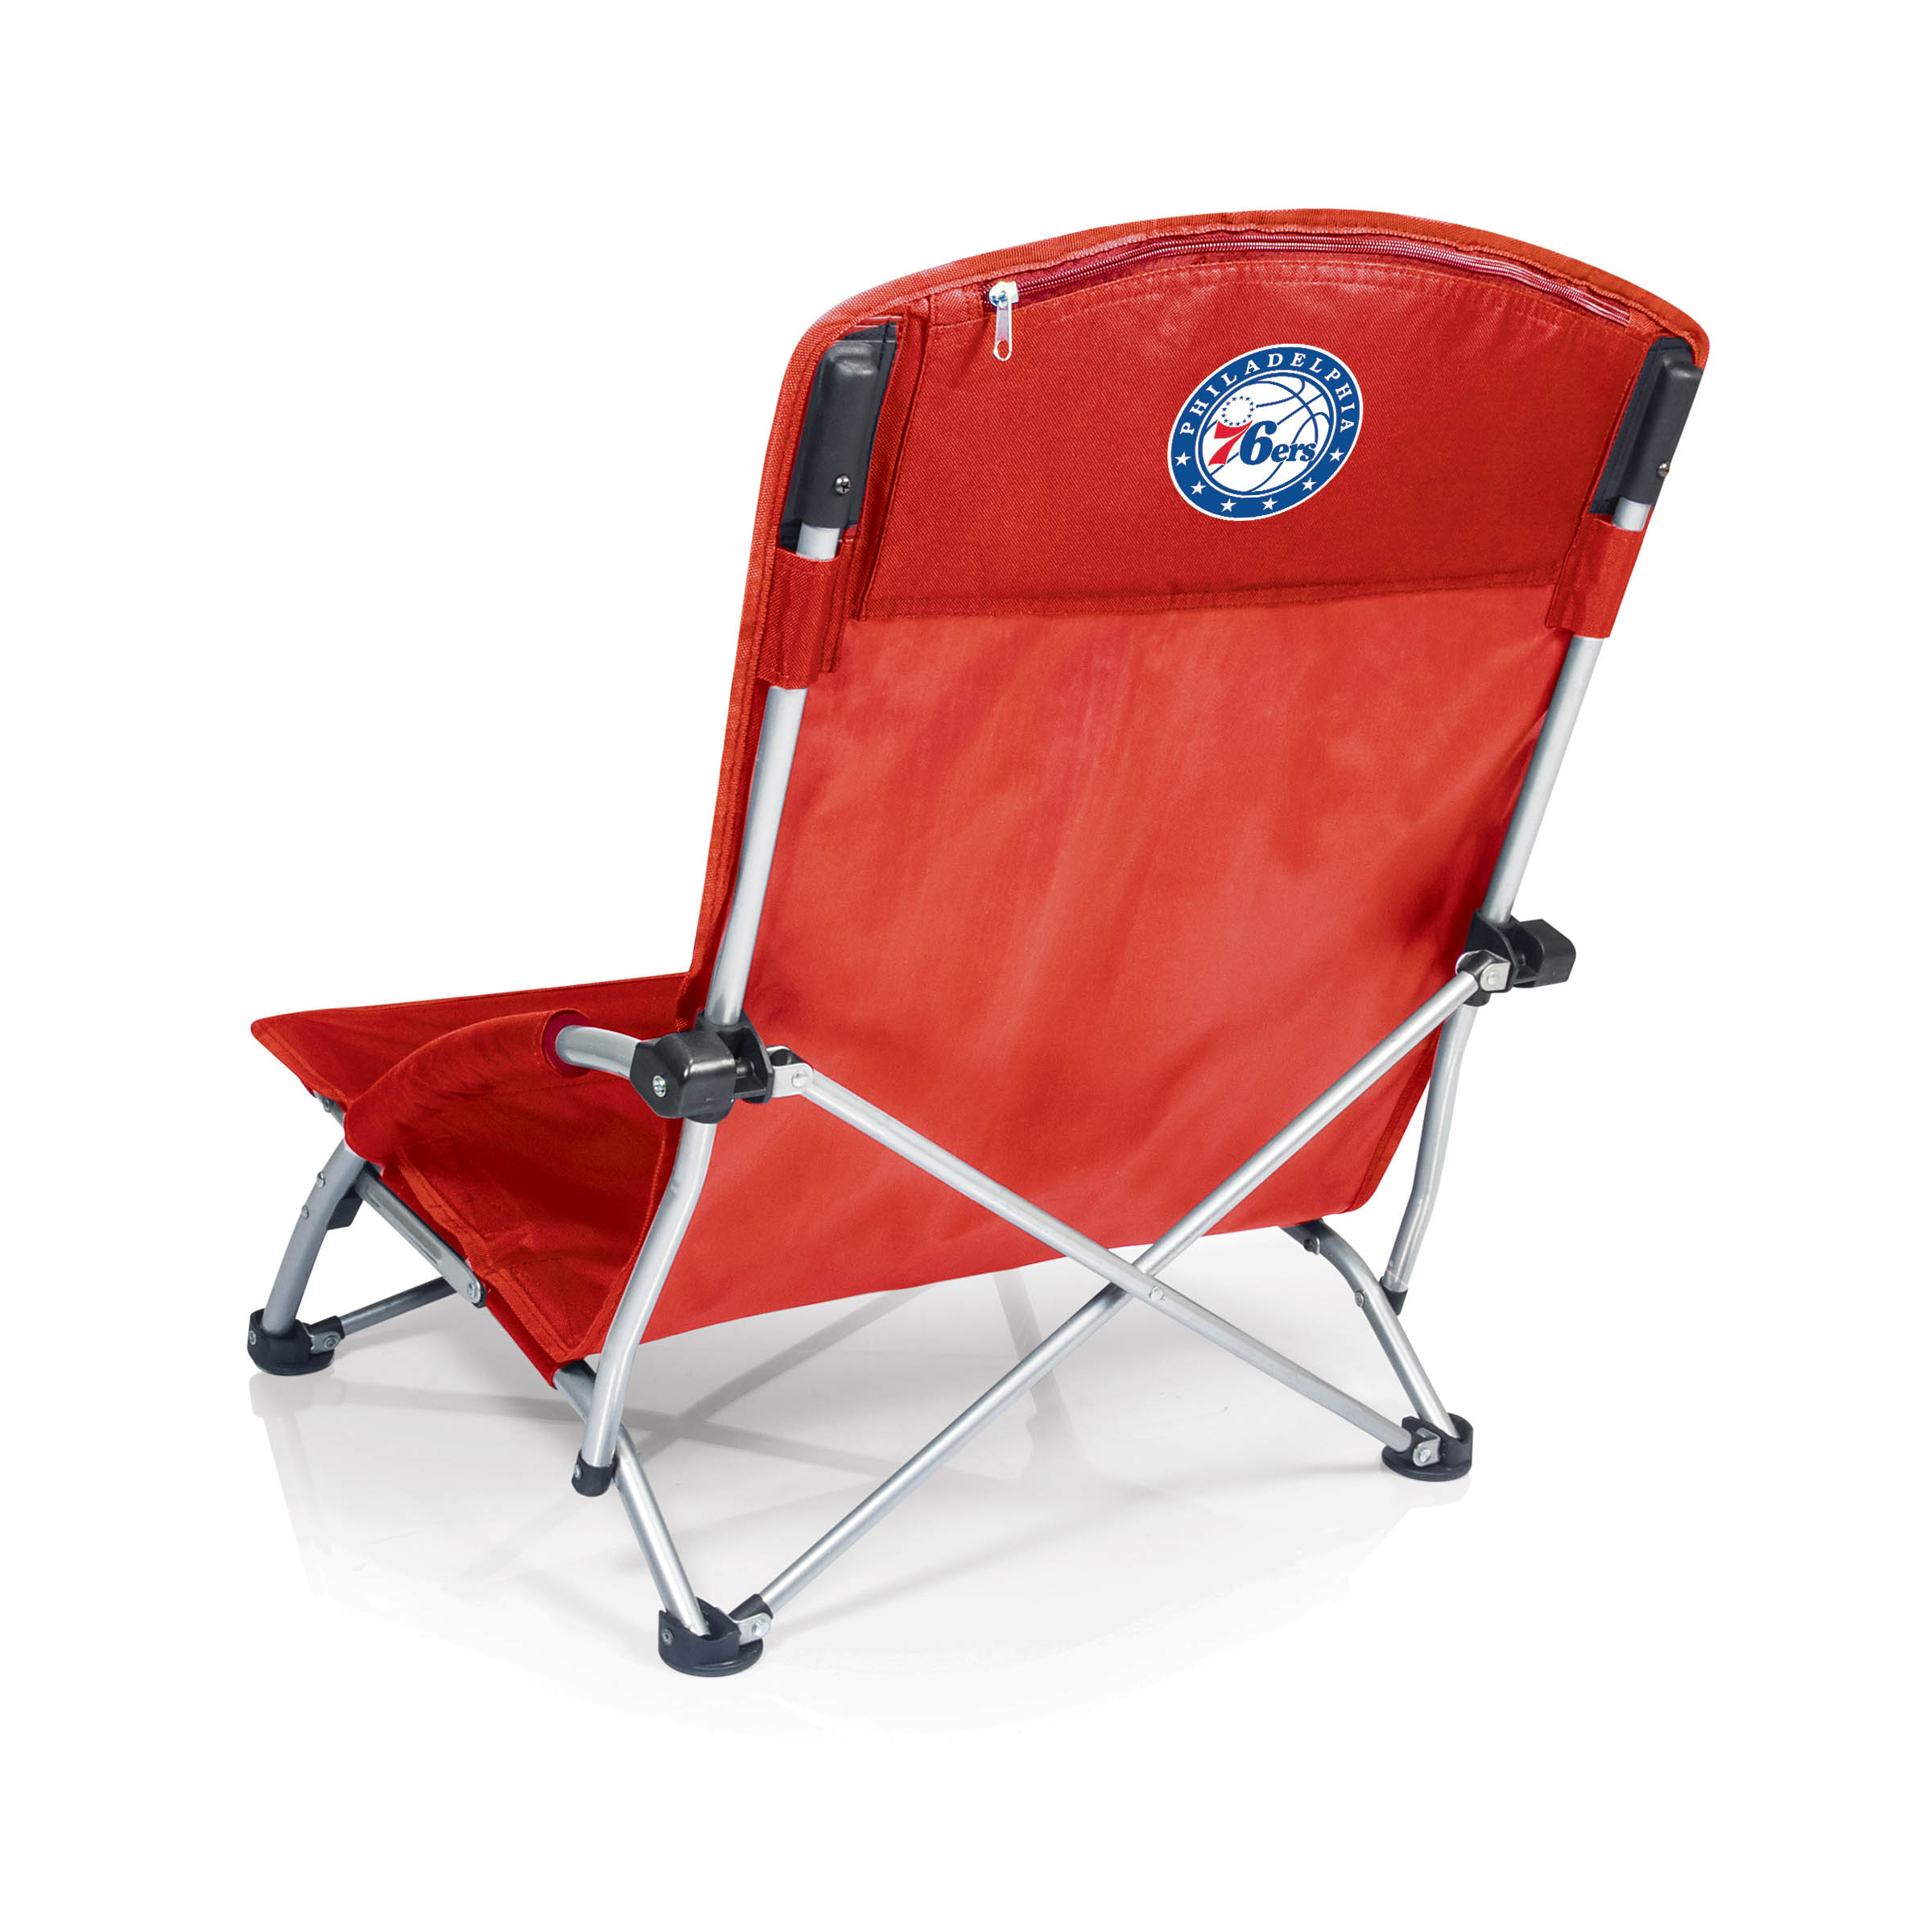 Philadelphia 76ers Red Tranquility Portable Beach Chair by Picnic